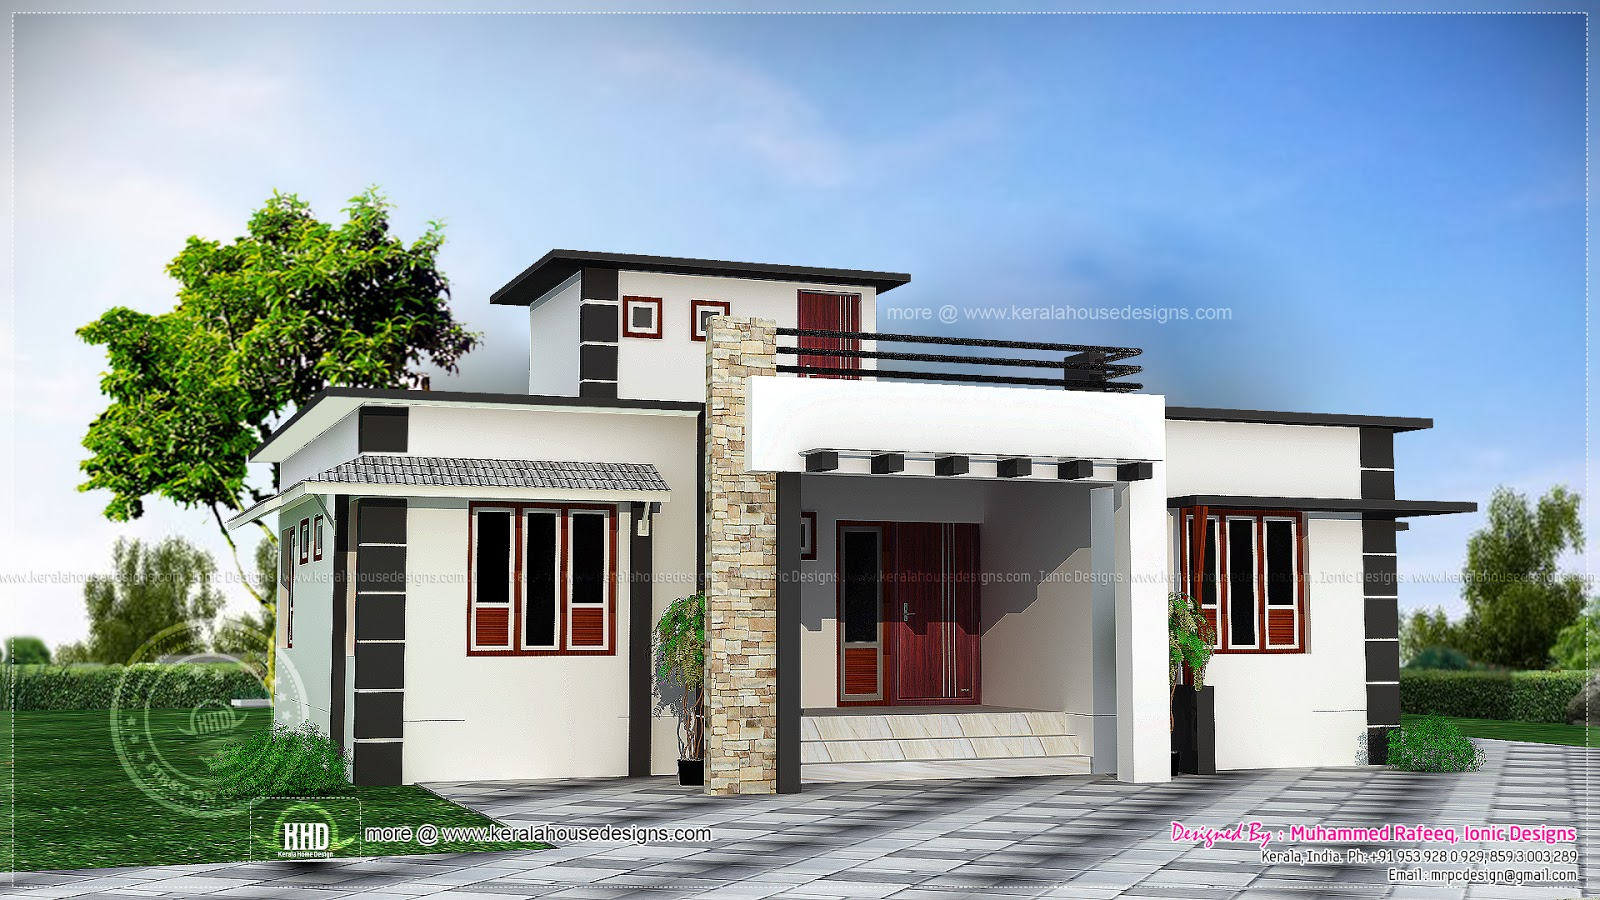 Storey Building Design In India